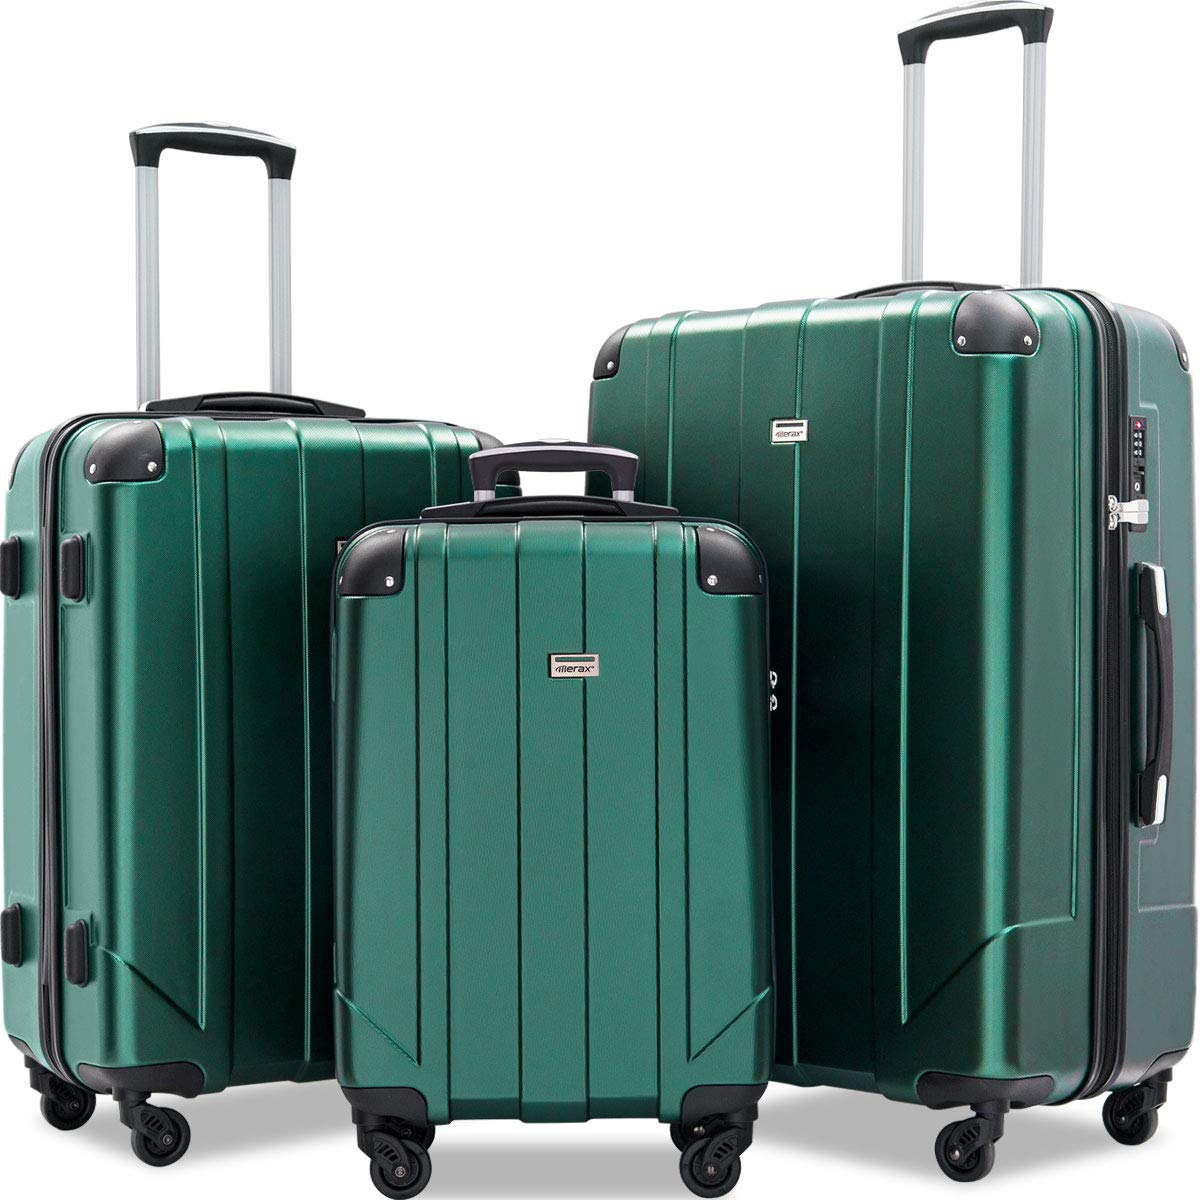 Merax 3 Pcs Luggage Set with Built-in TSA and Reinforced Corners, Eco-friendly P.E.T Light Weight Spinner Suitcase Set (Blackish Green)